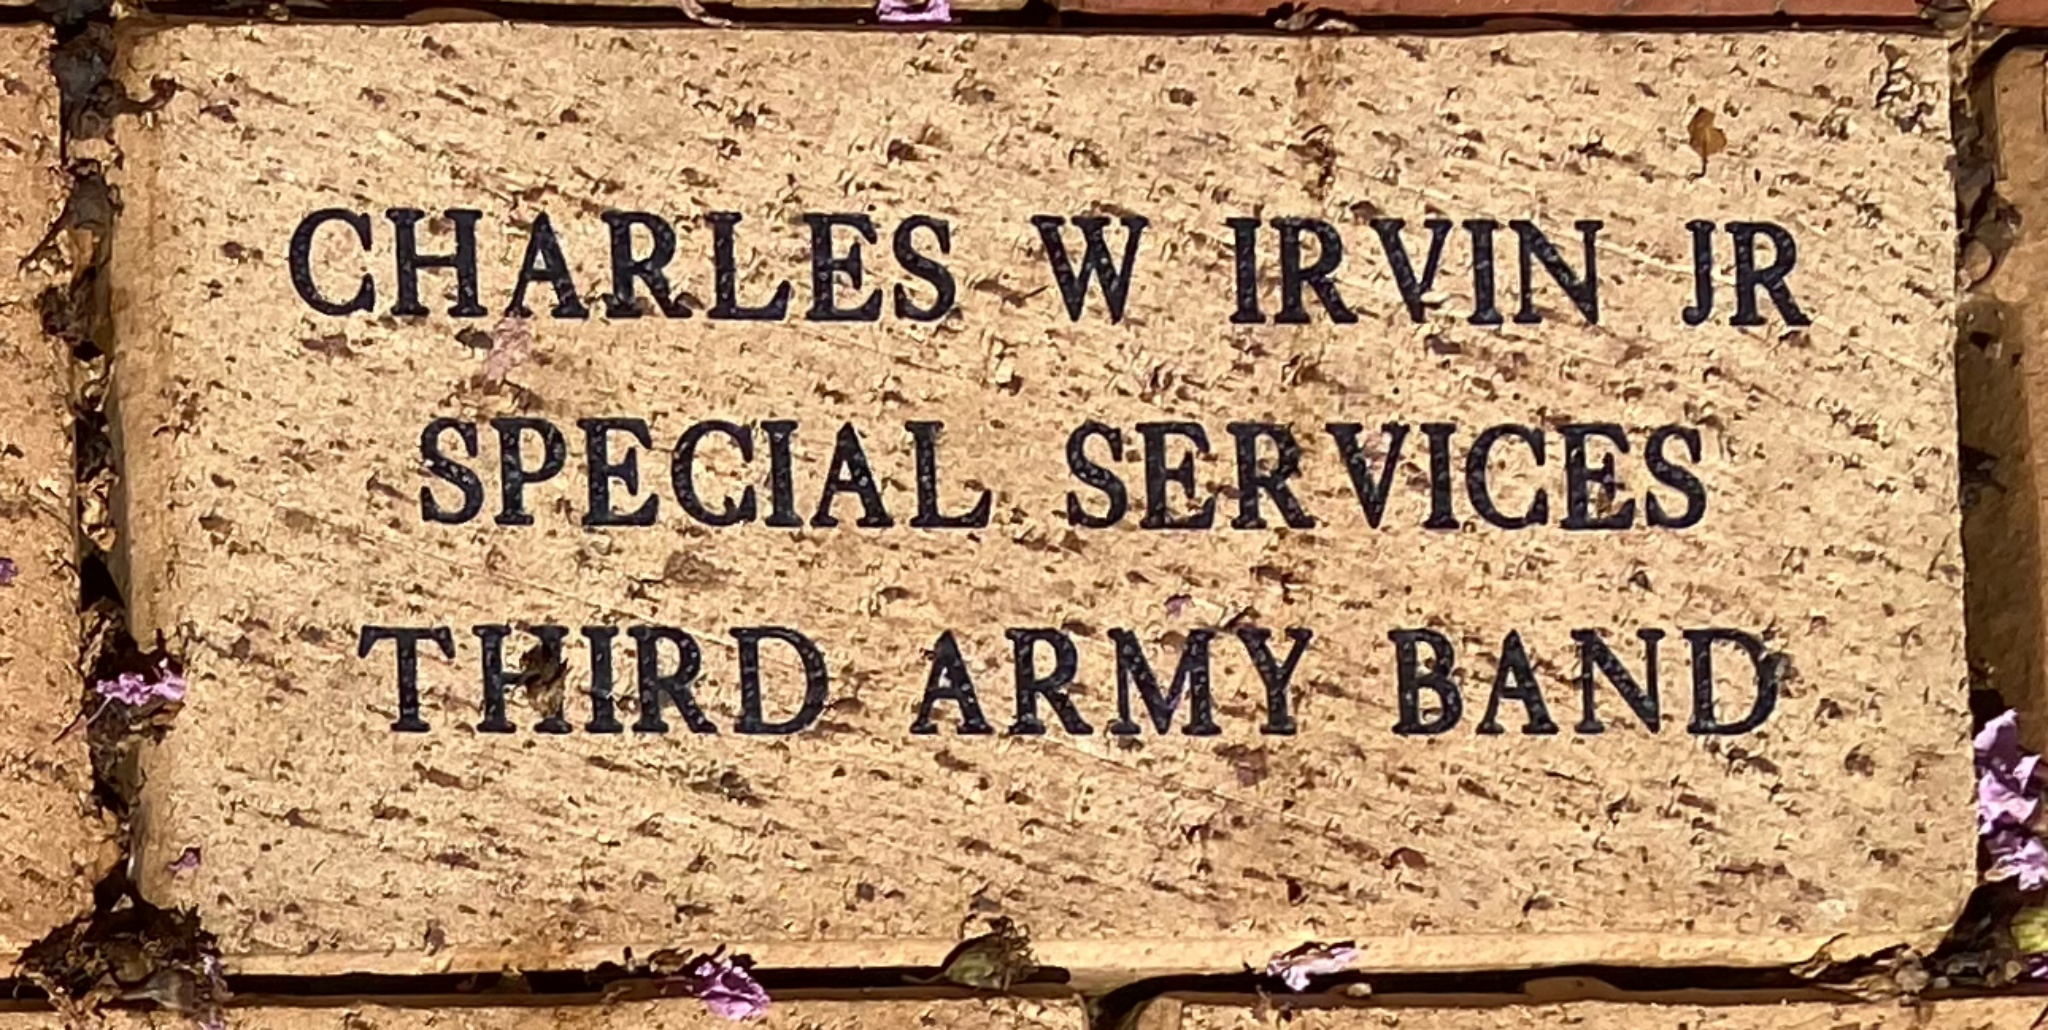 CHARLES W IRVIN JR SPECIAL SERVICES THIRD ARMY BAND